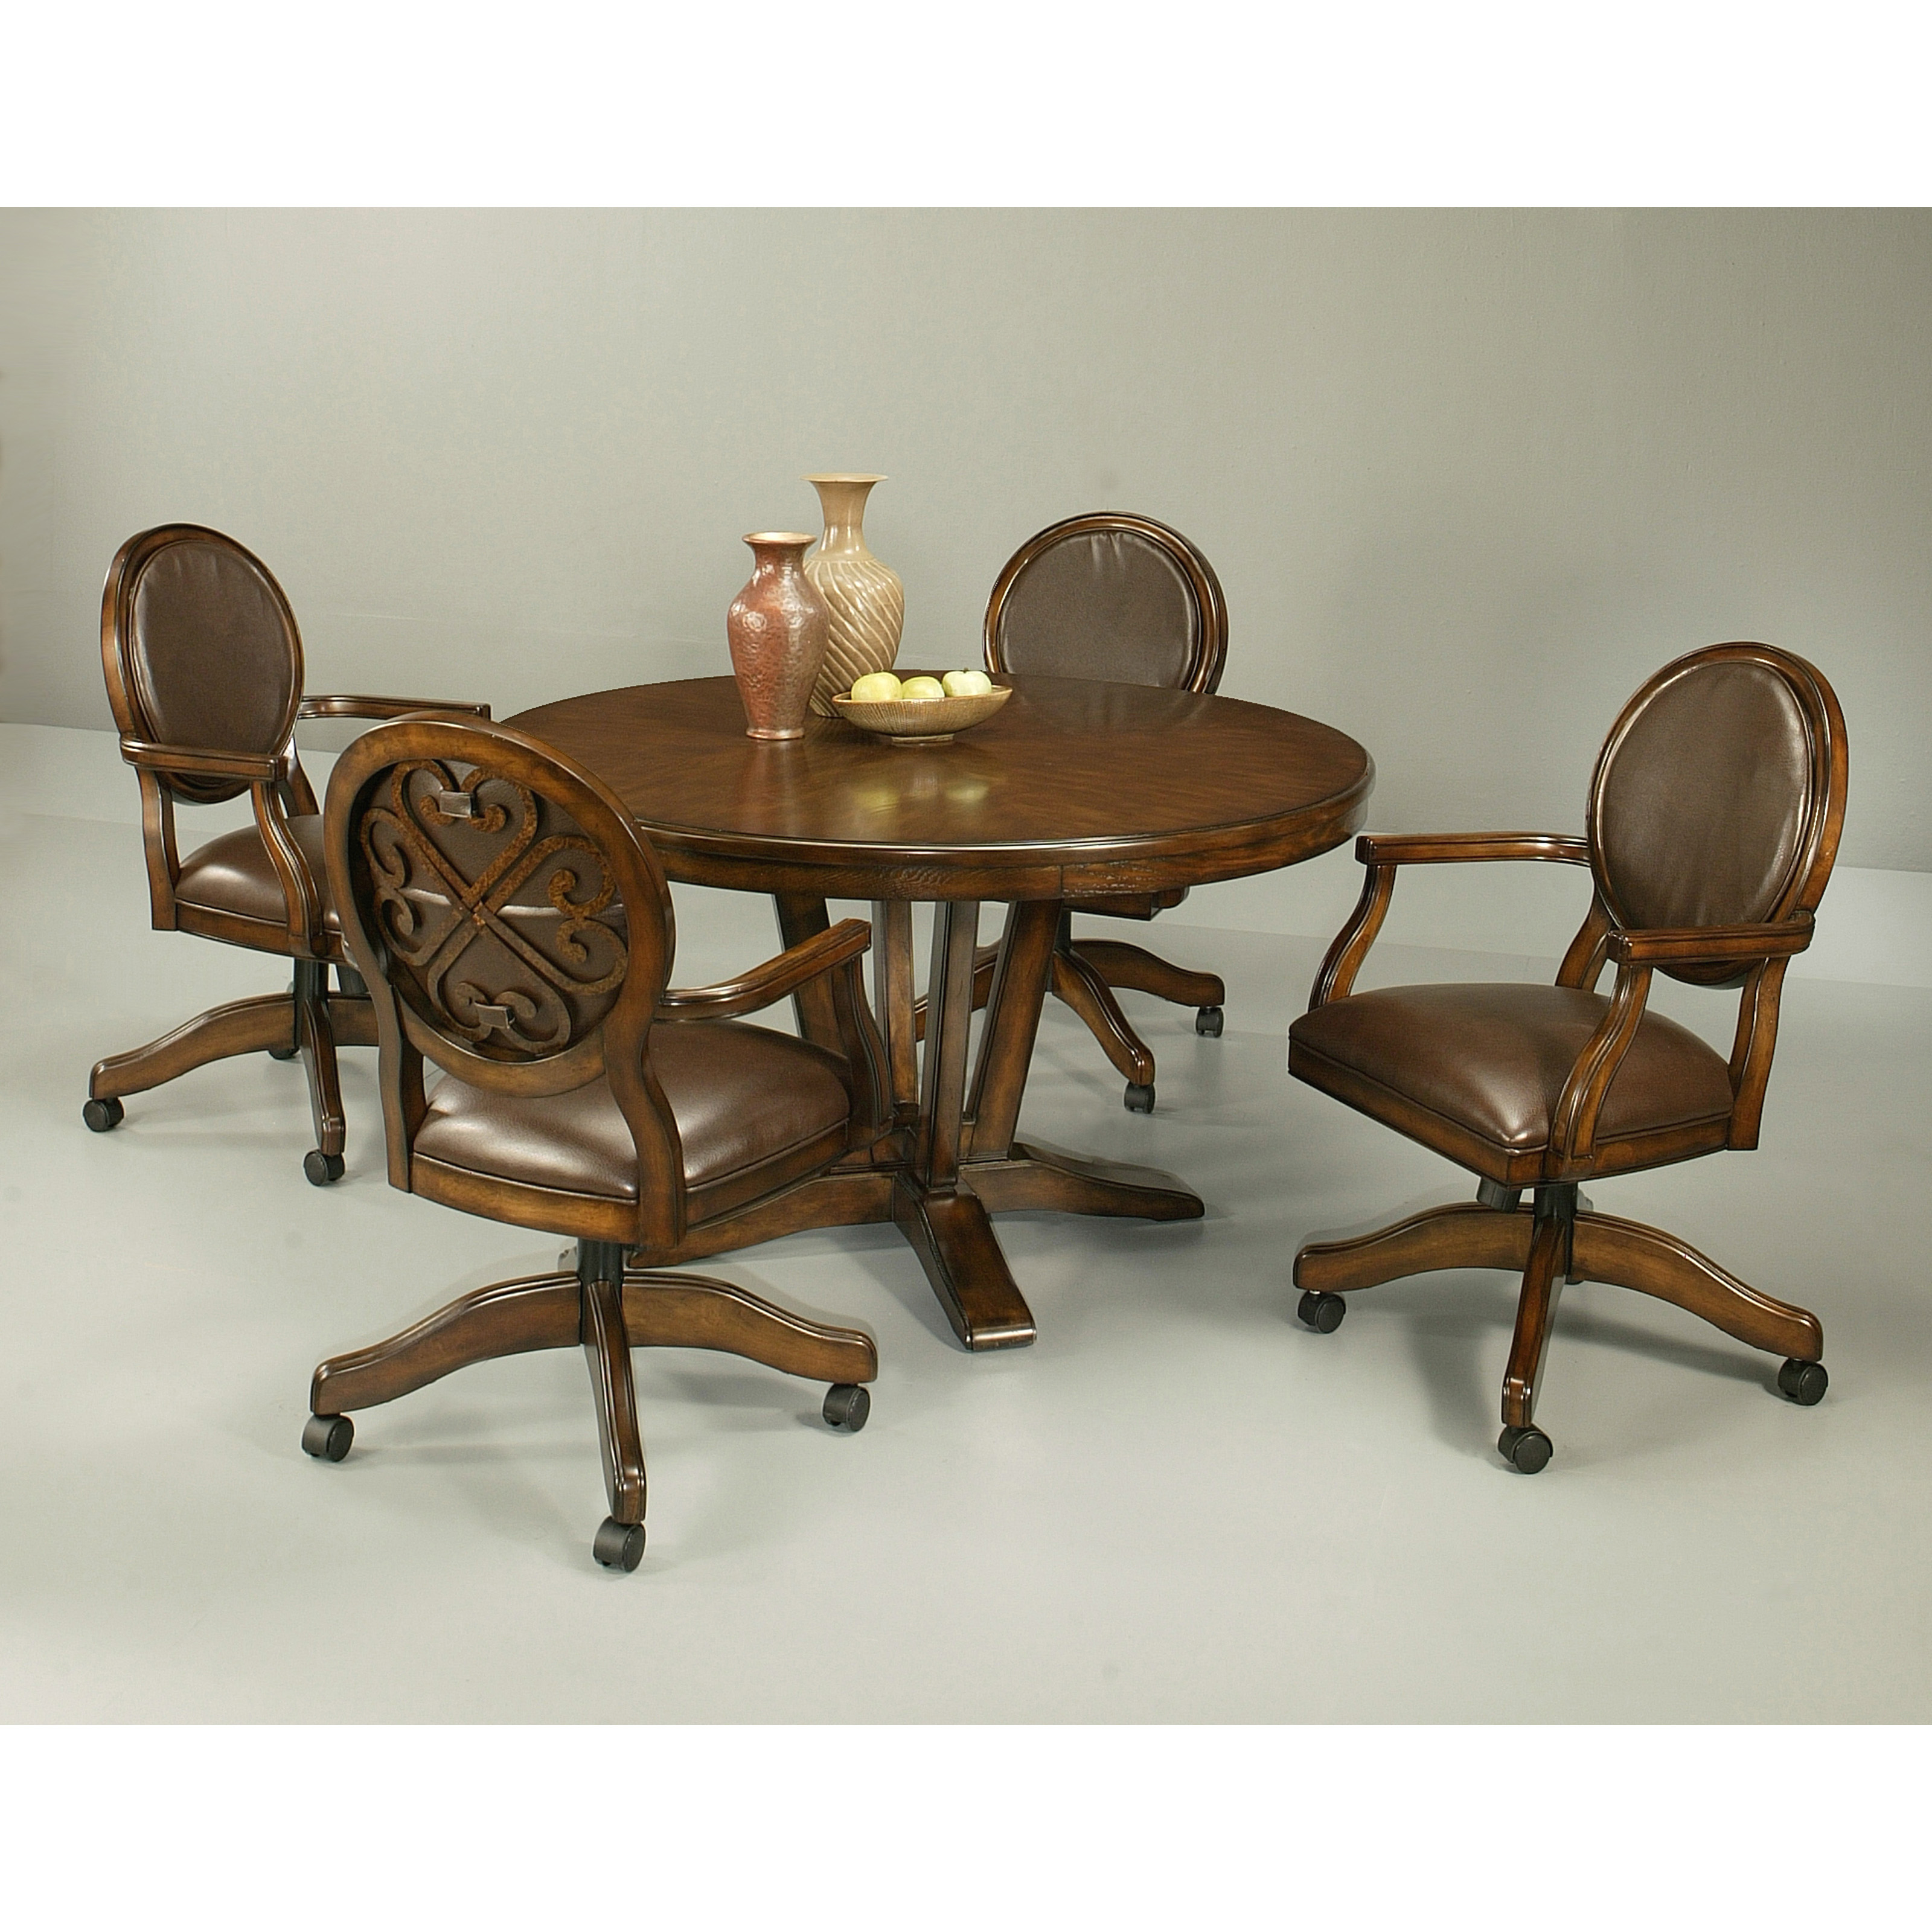 Dining Chairs With Casters Pastel Furniture Devon Coast 5 Piece Distressed Cherry